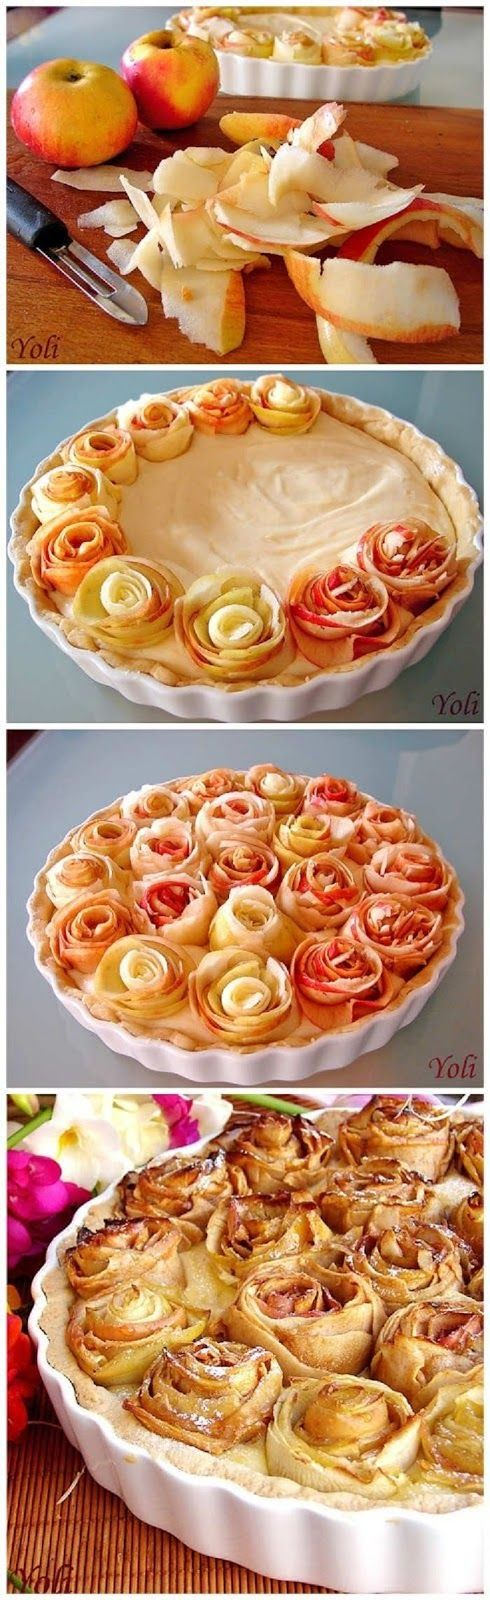 Apple Pie With Roses - made with pieces of shaved apple. Use a potato peeler to make the shavings & brush them with pineapple juice to prevent premature browning.